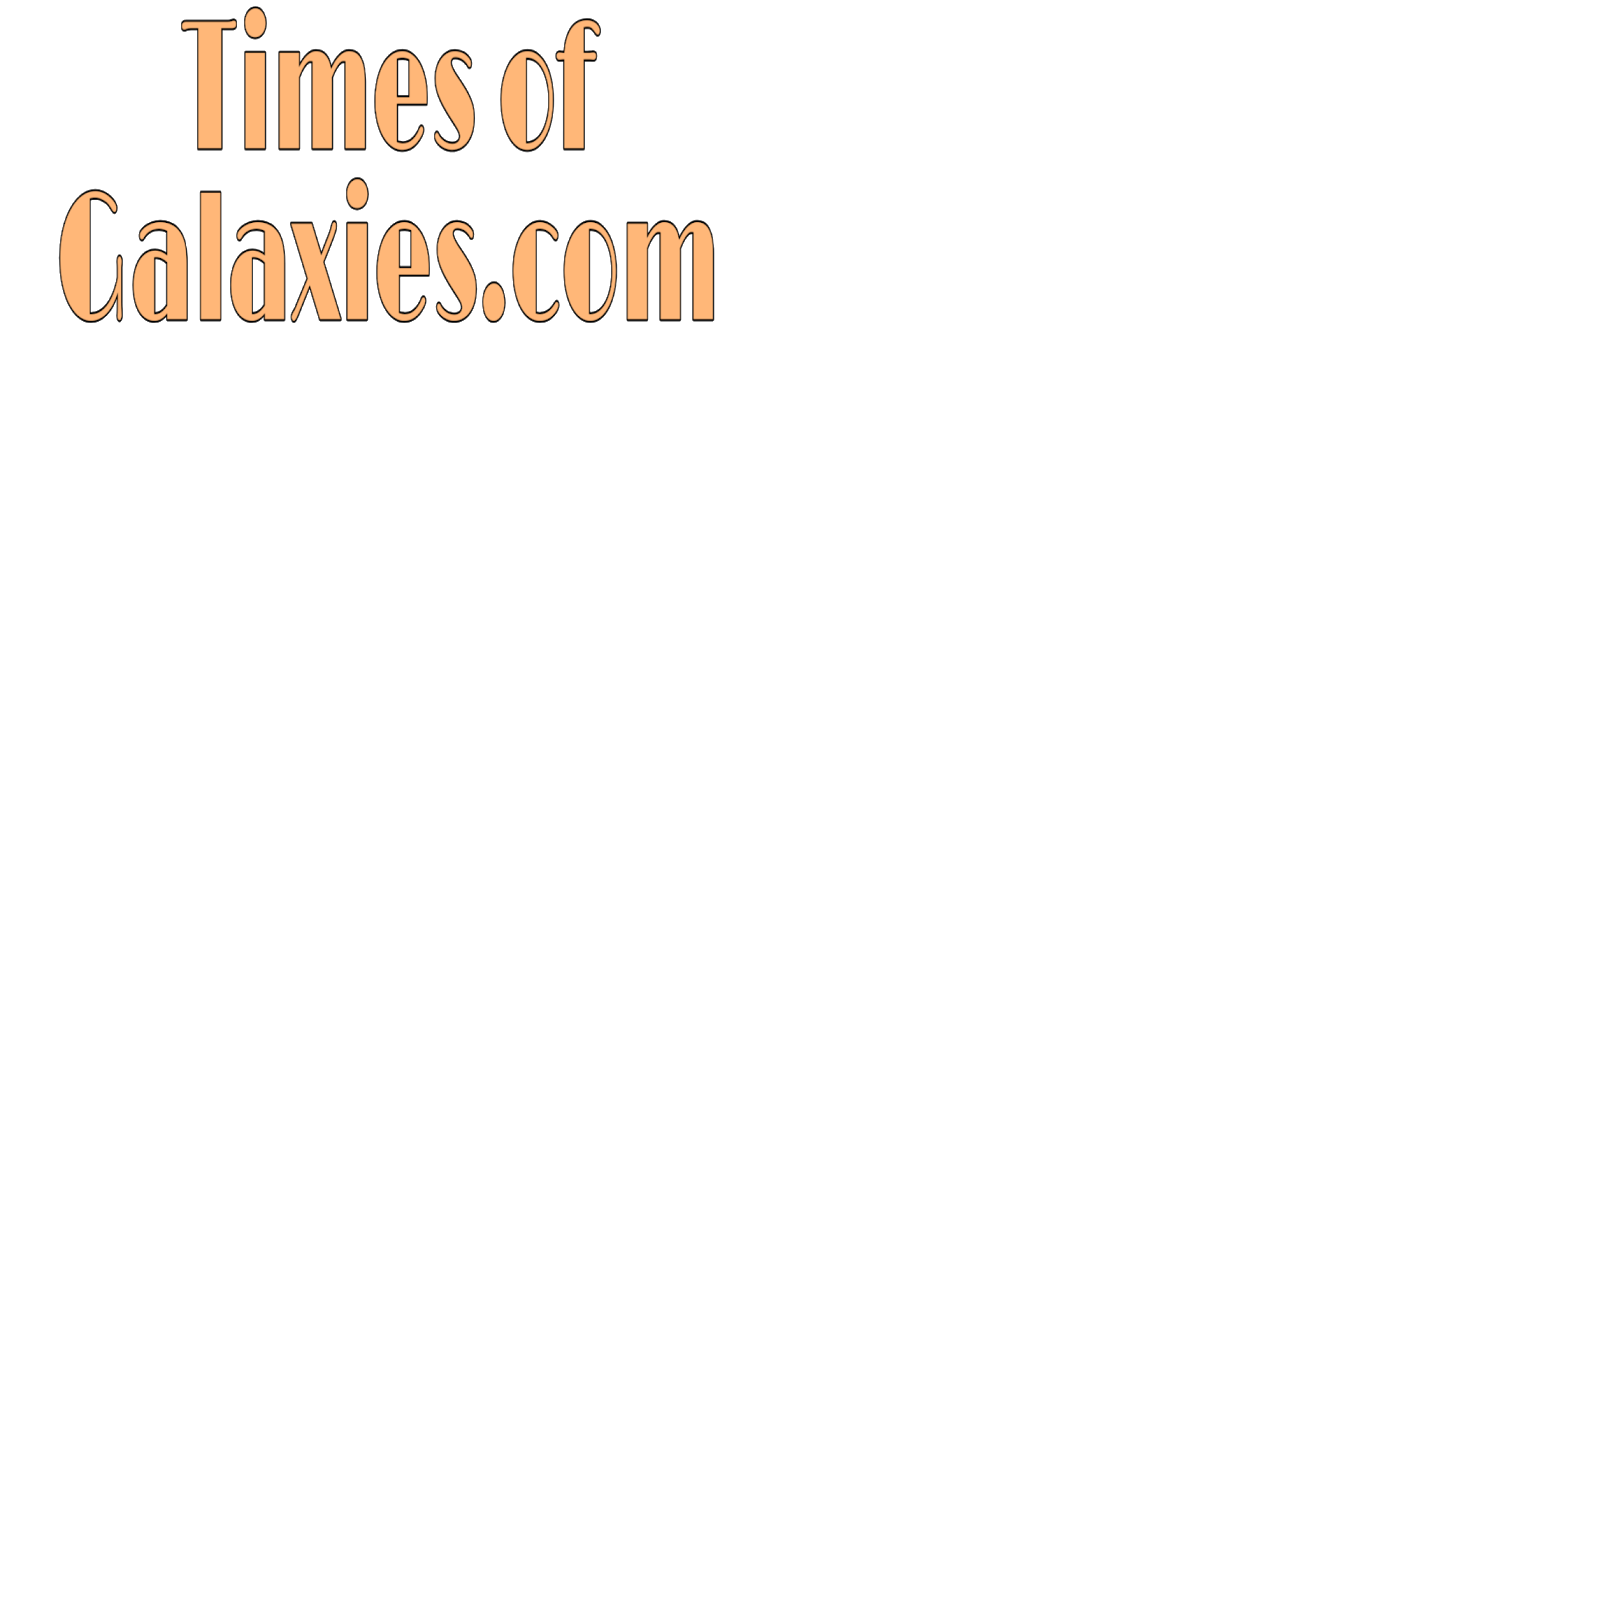 Times-Of-Galaxy